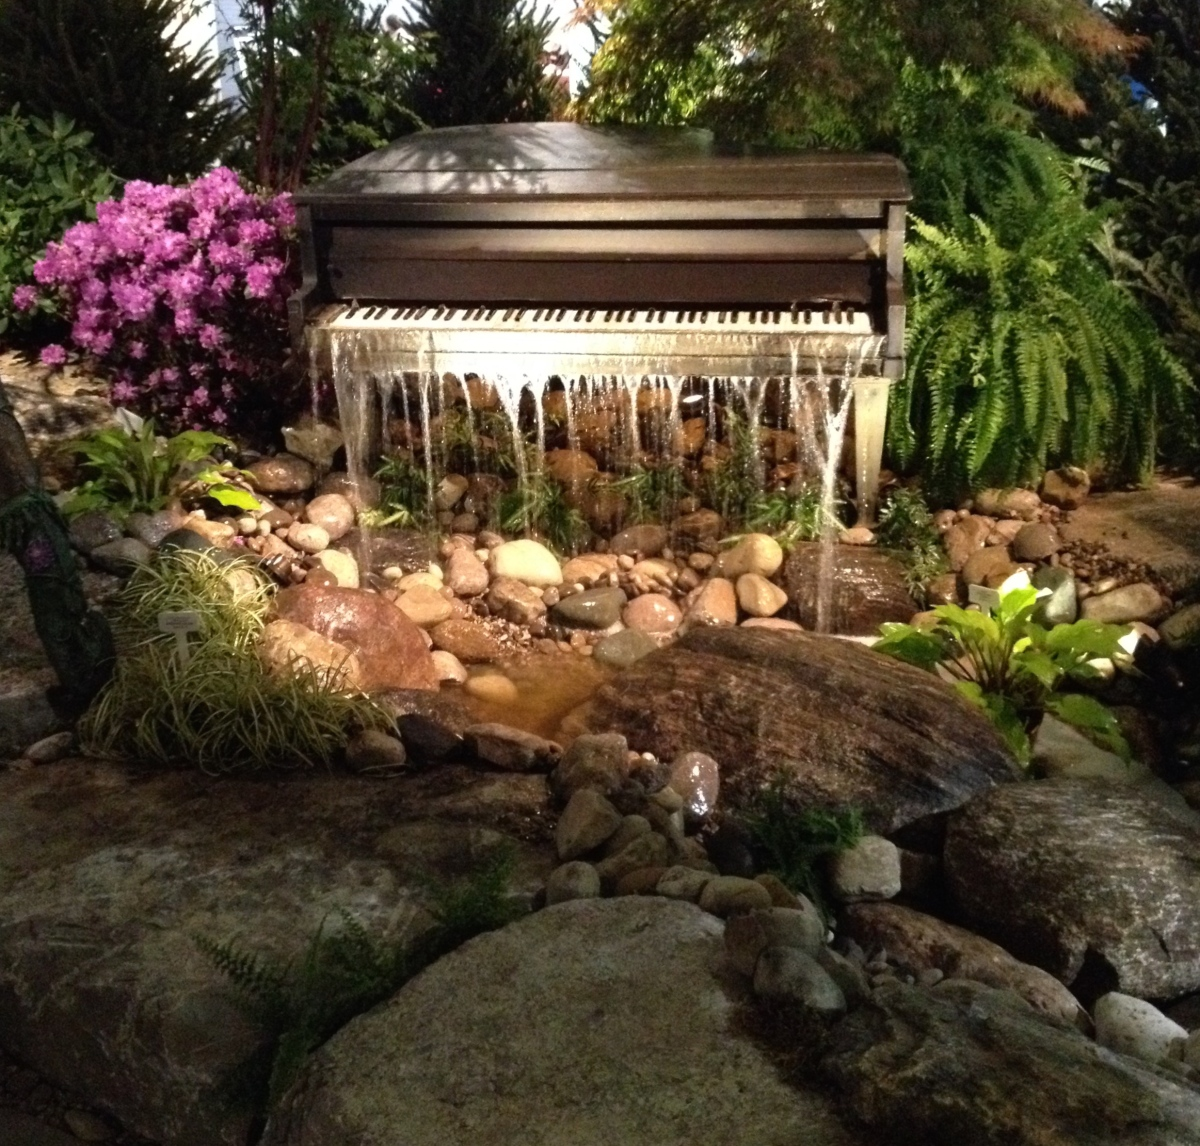 A piano is recycled into a garden water feature.